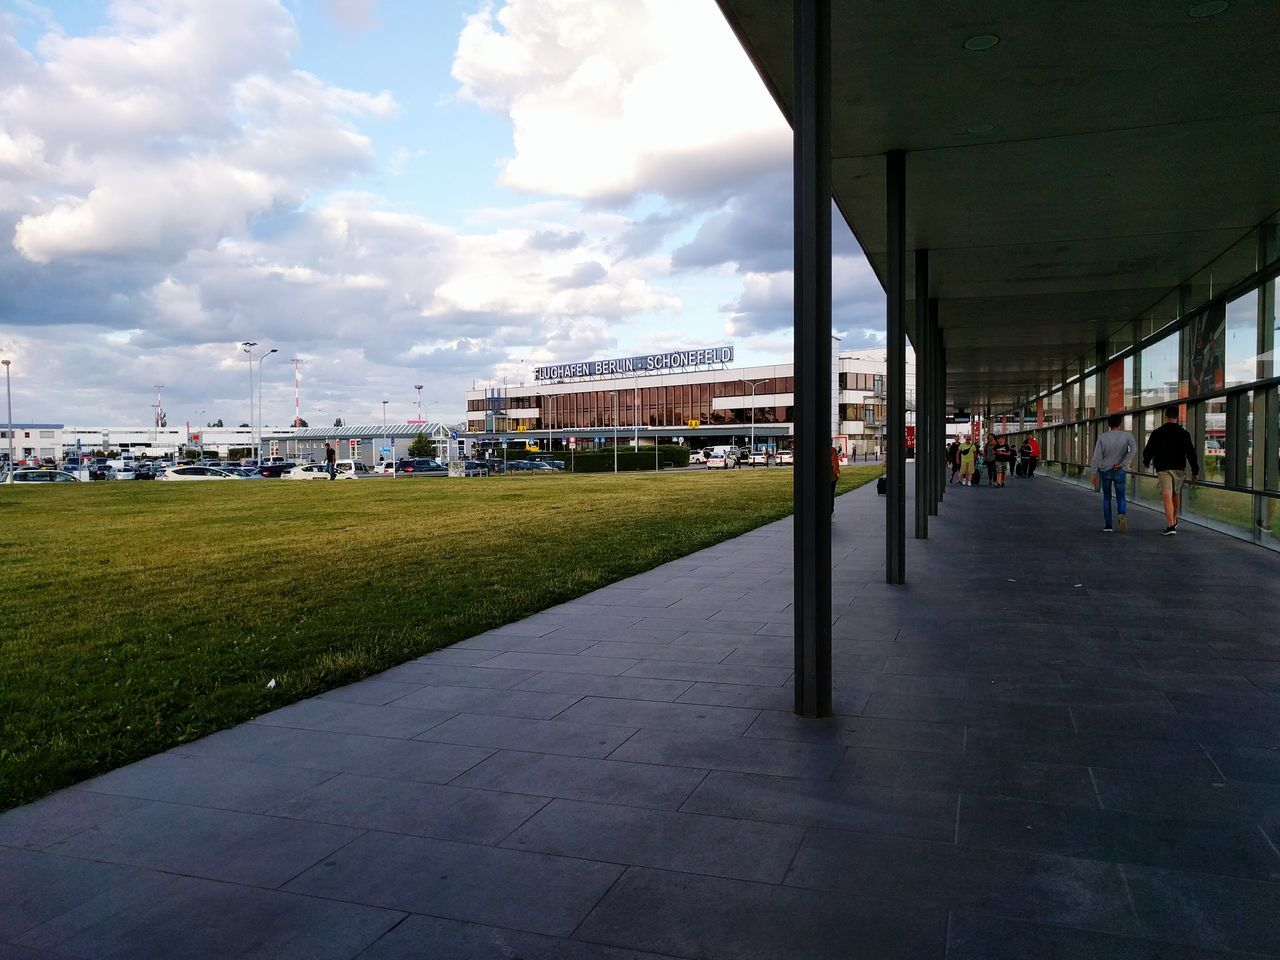 architecture, built structure, sky, cloud - sky, building exterior, day, outdoors, real people, grass, nature, city